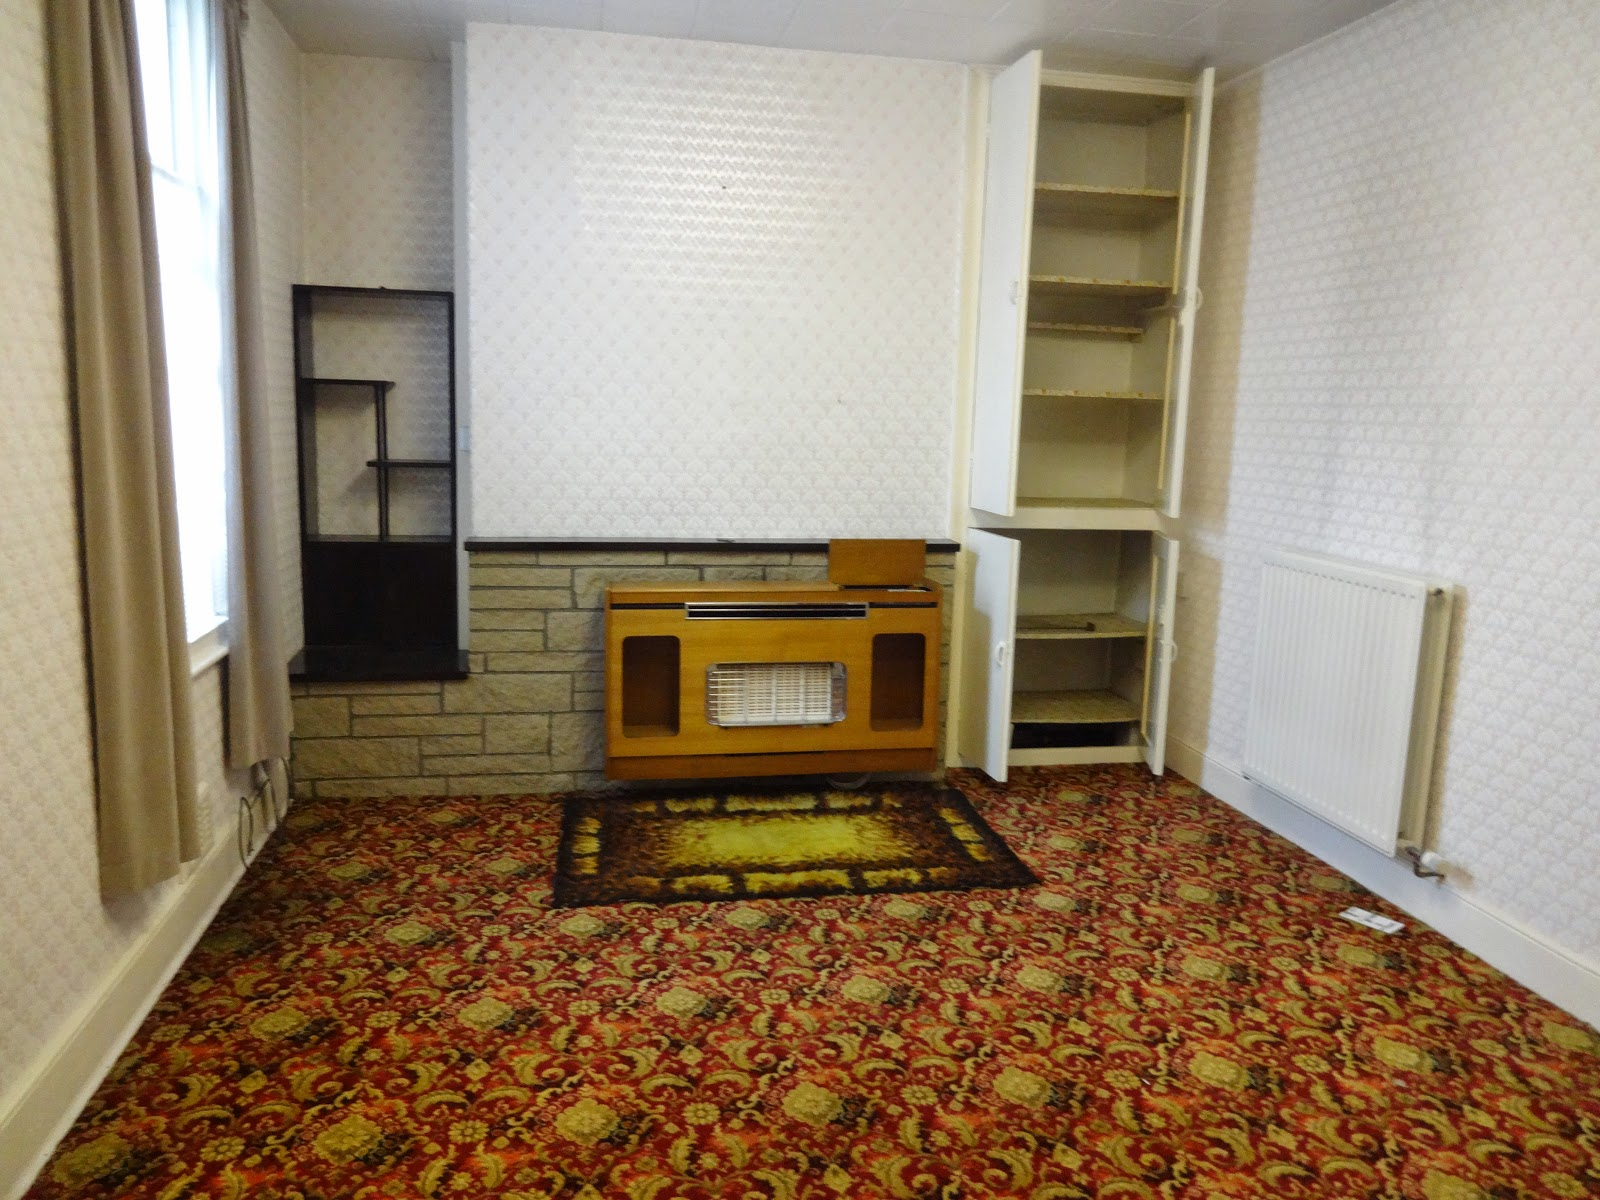 retro dining room with patterned carpet and old back boiler